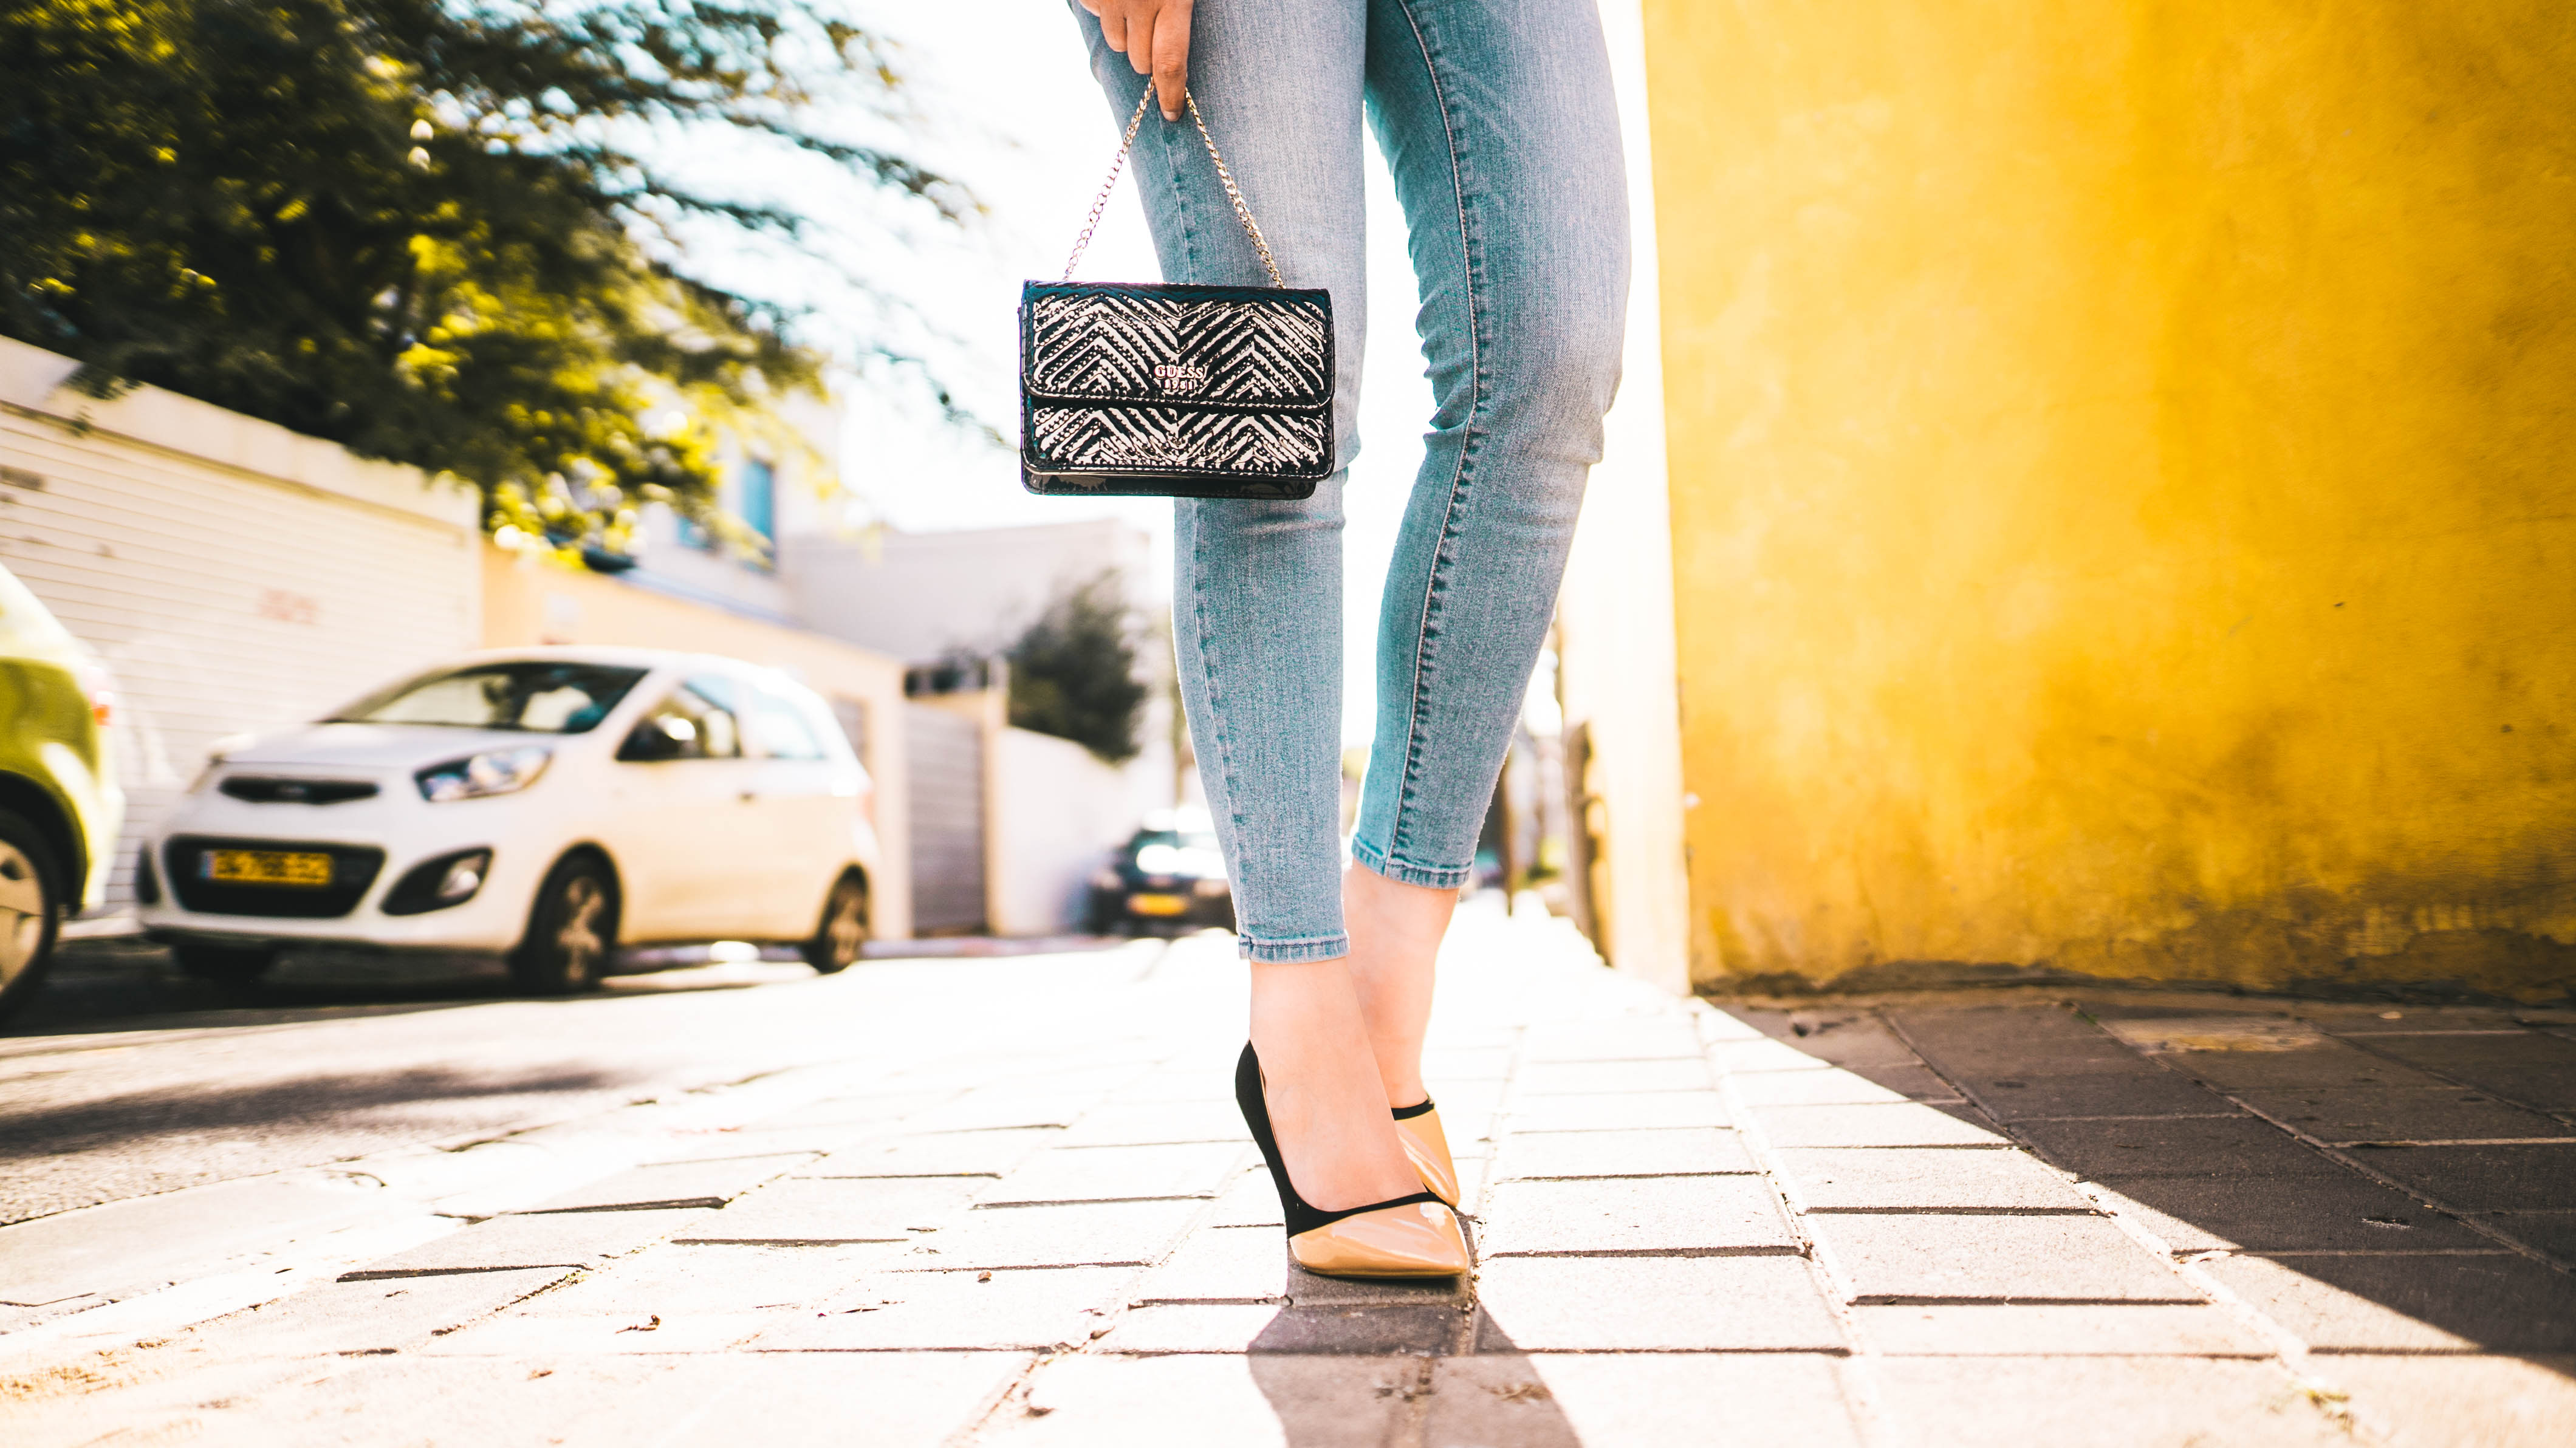 Fashionista in the city jeans & bag